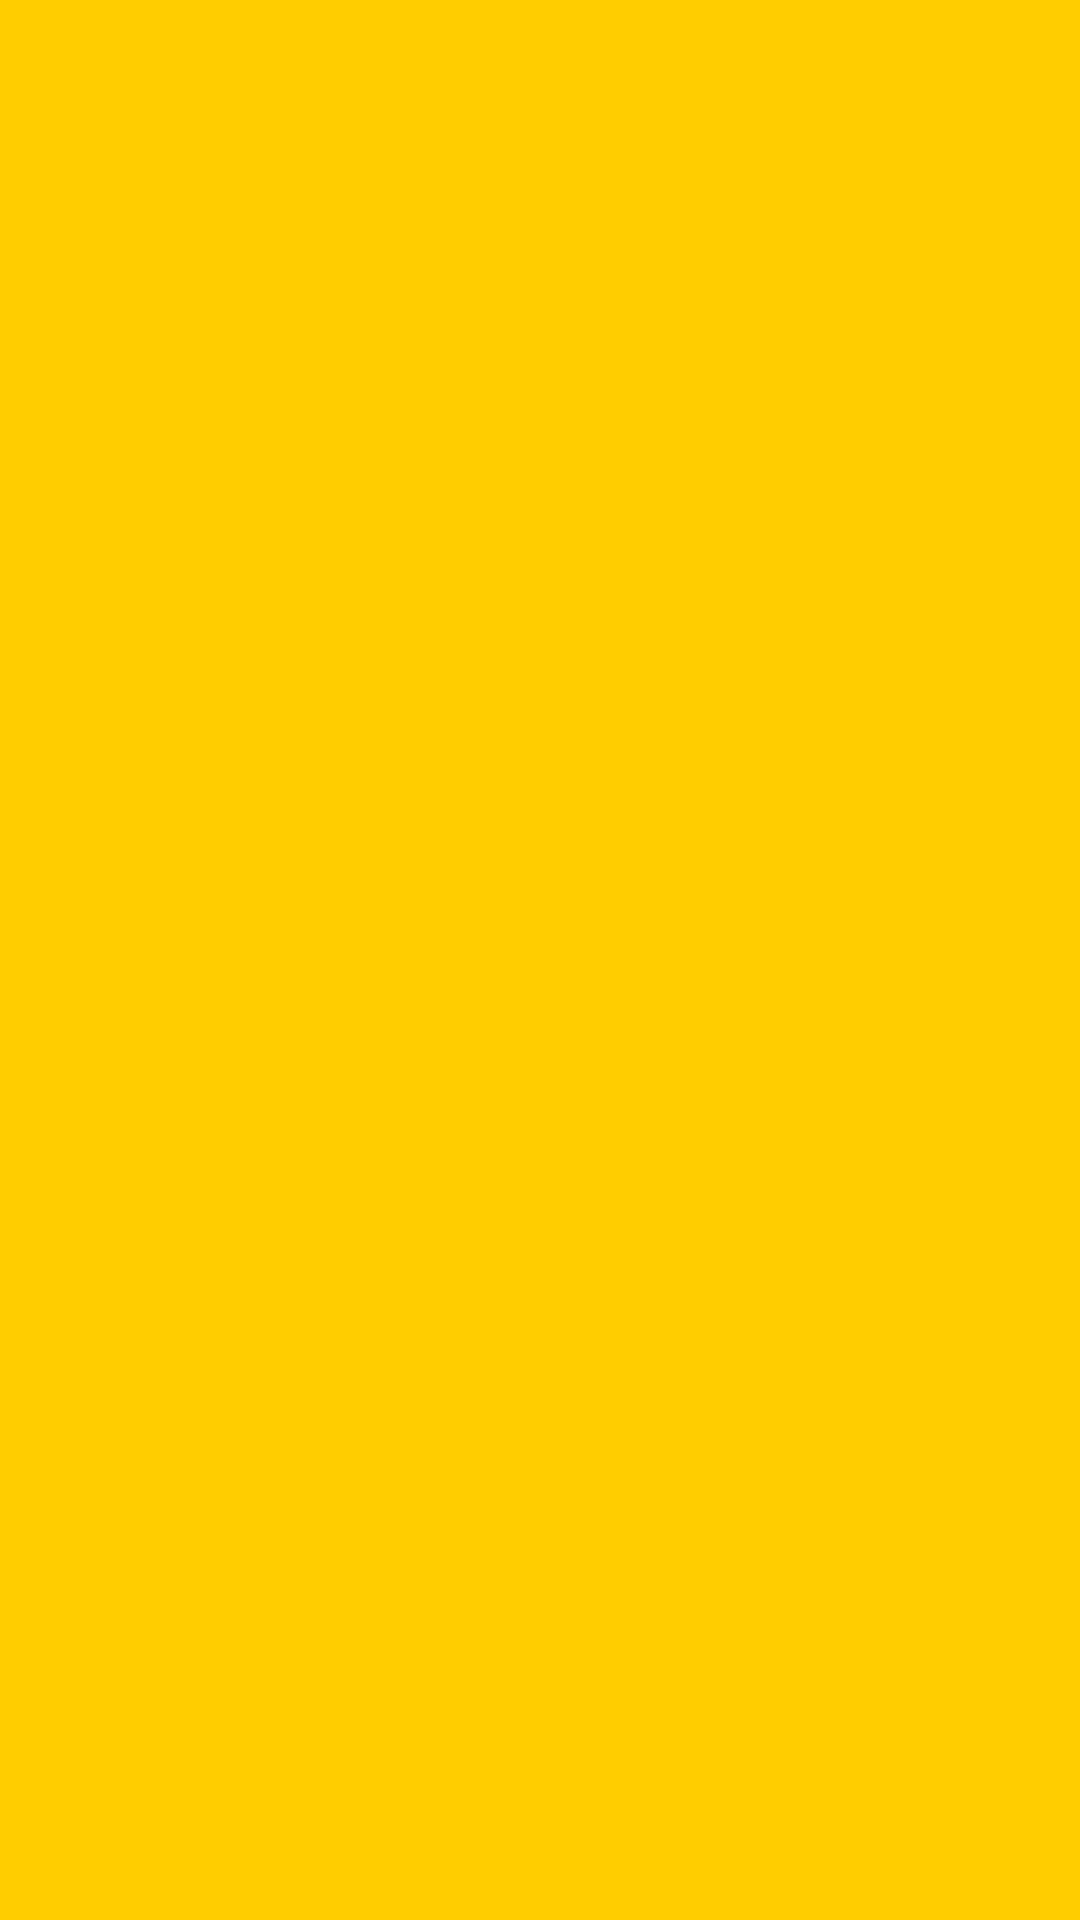 1080x1920 Tangerine Yellow Solid Color Background